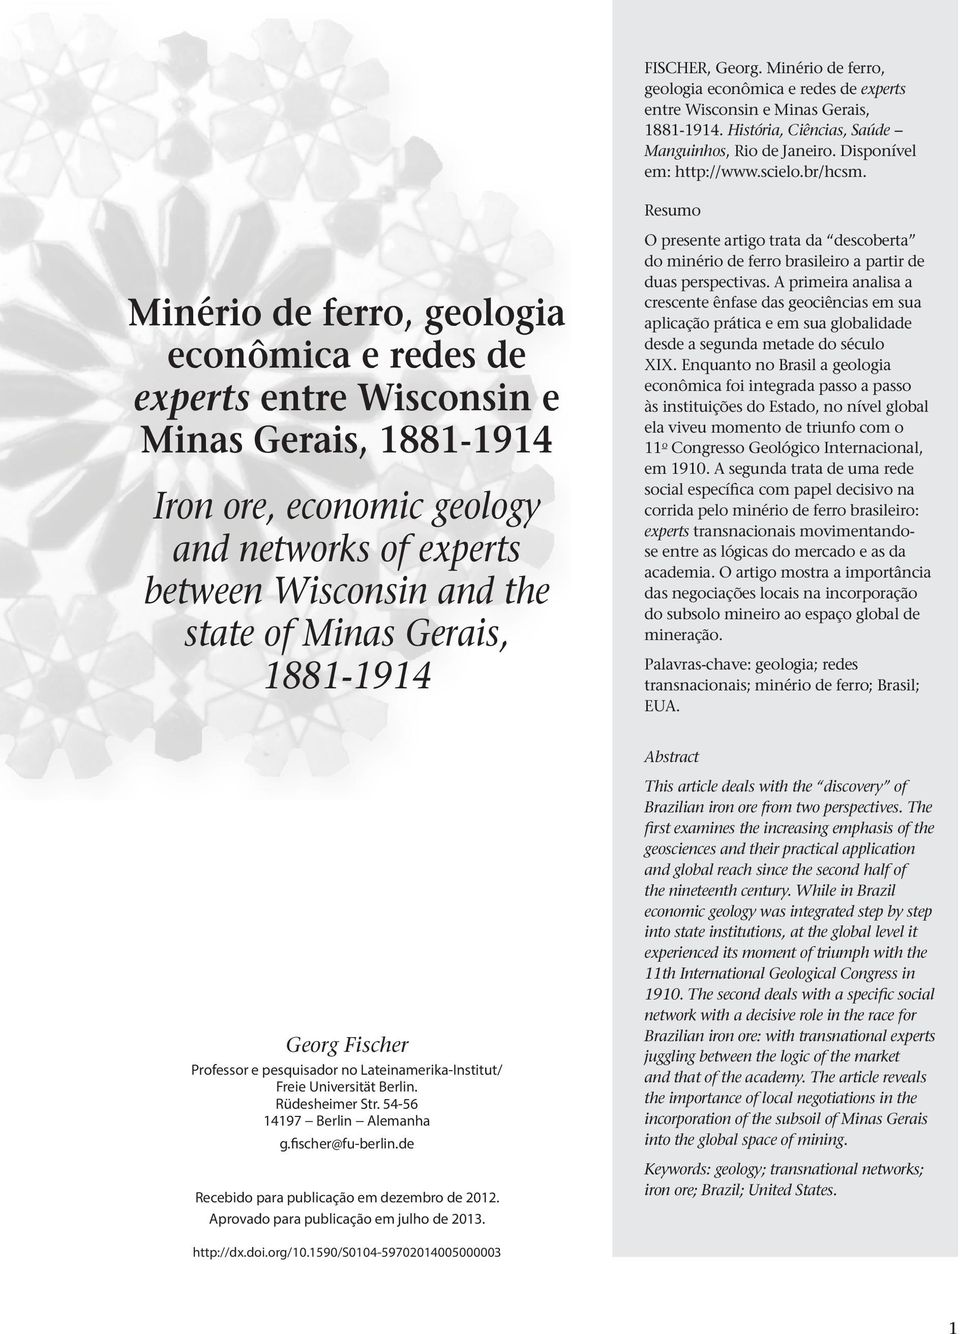 Resumo Minério de ferro, geologia econômica e redes de experts entre Wisconsin e Minas Gerais, 1881-1914 Iron ore, economic geology and networks of experts between Wisconsin and the state of Minas